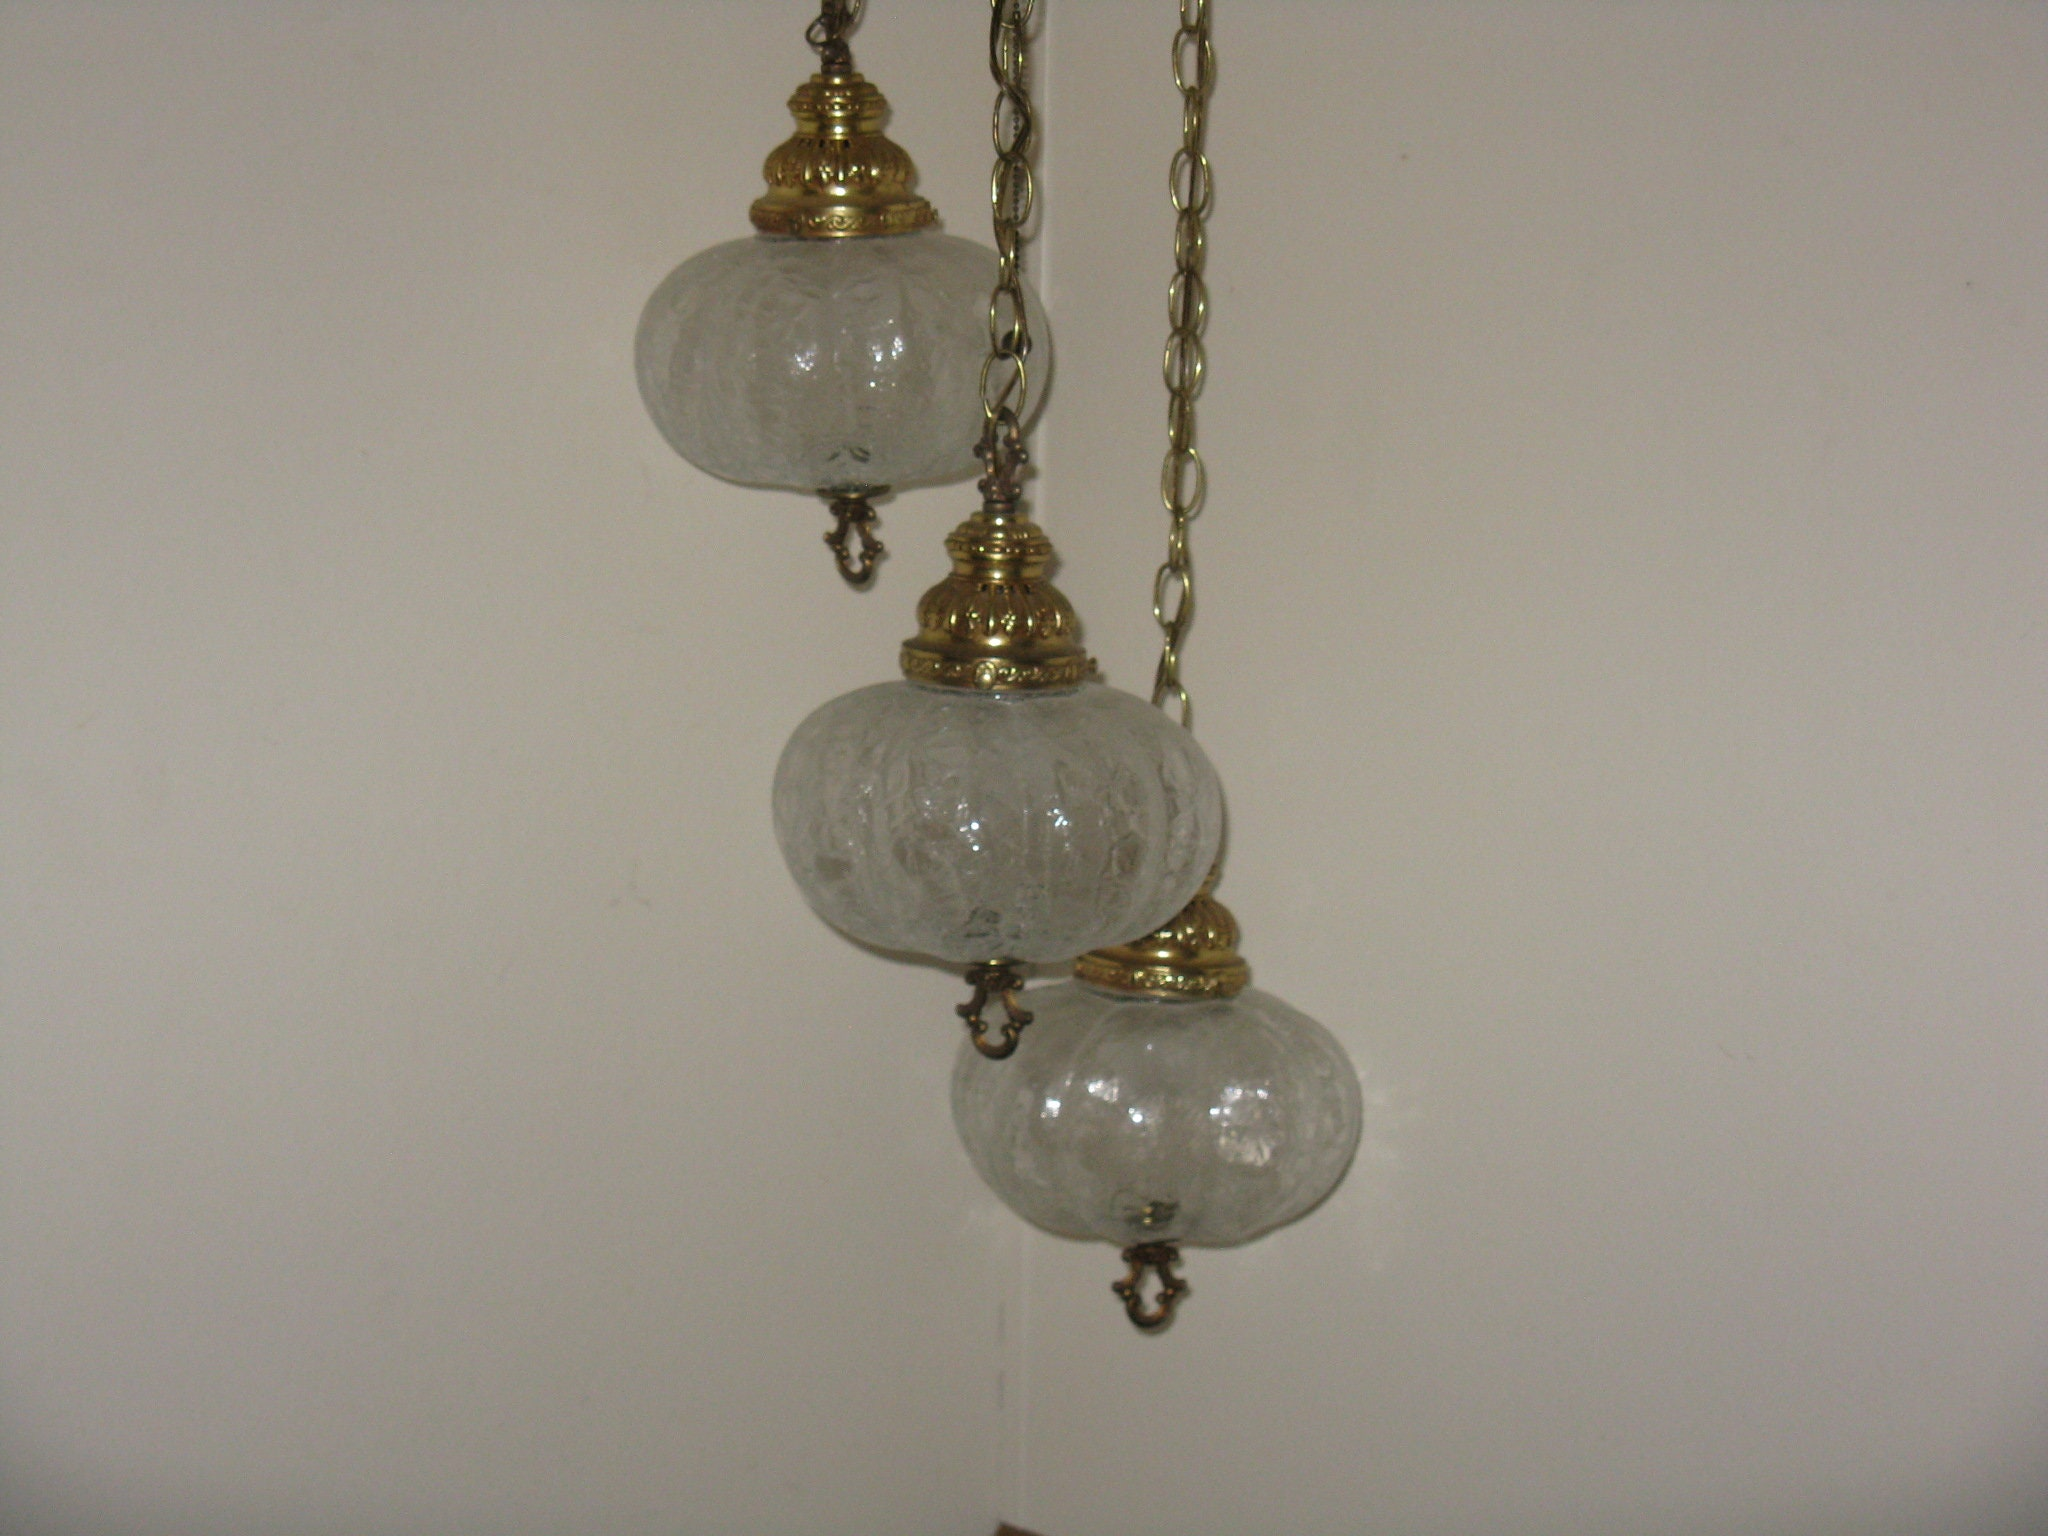 Vintage hanging swag lamp with 3 lights